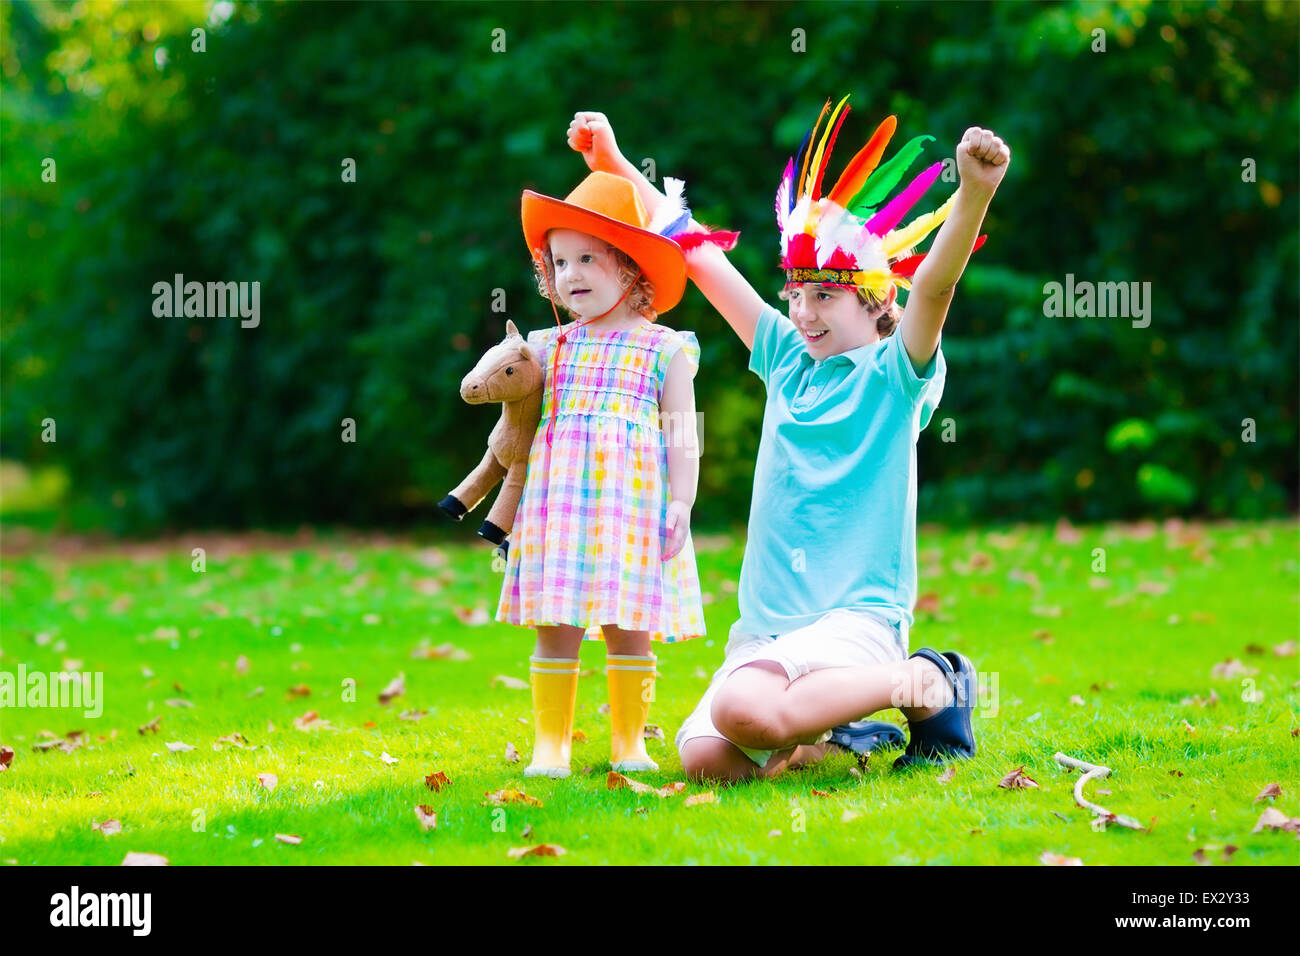 Kids in cowboy and cowgirl costumes playing outdoors. Children play with toy horse. Boy in Native American hat on - Stock Image